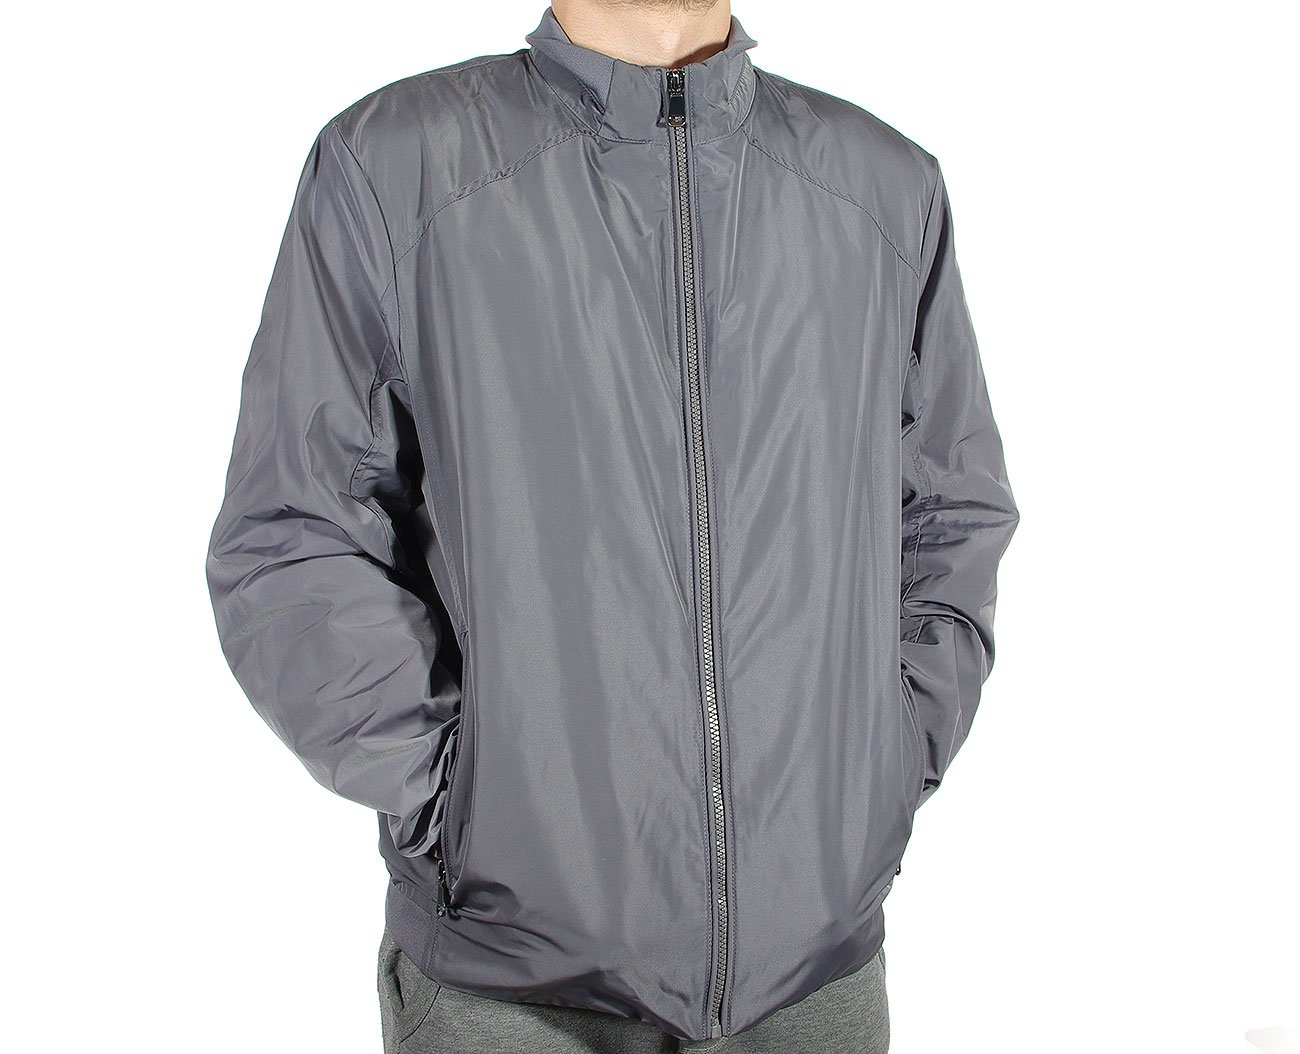 GEOX M8220U kurtka man jacket metal grey